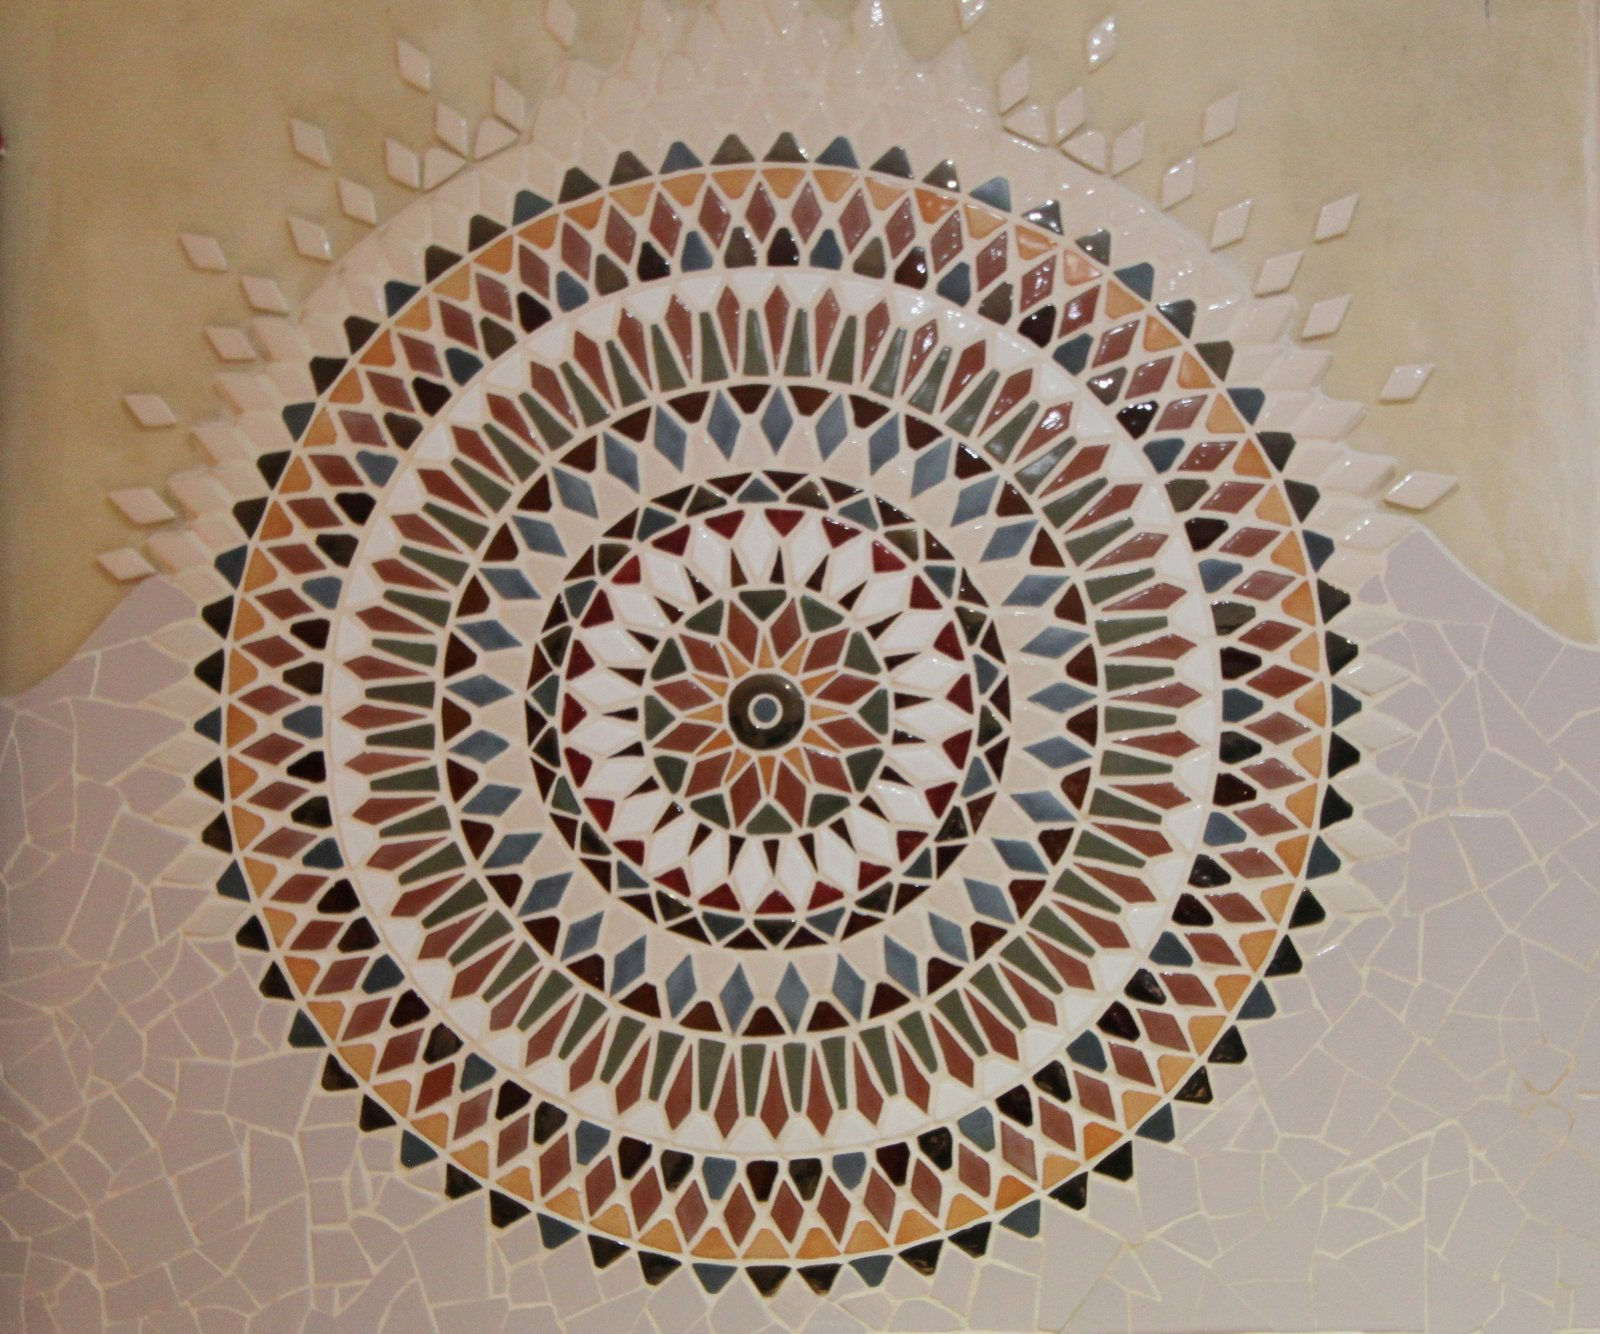 Kitchen-Mandala-1.JPG